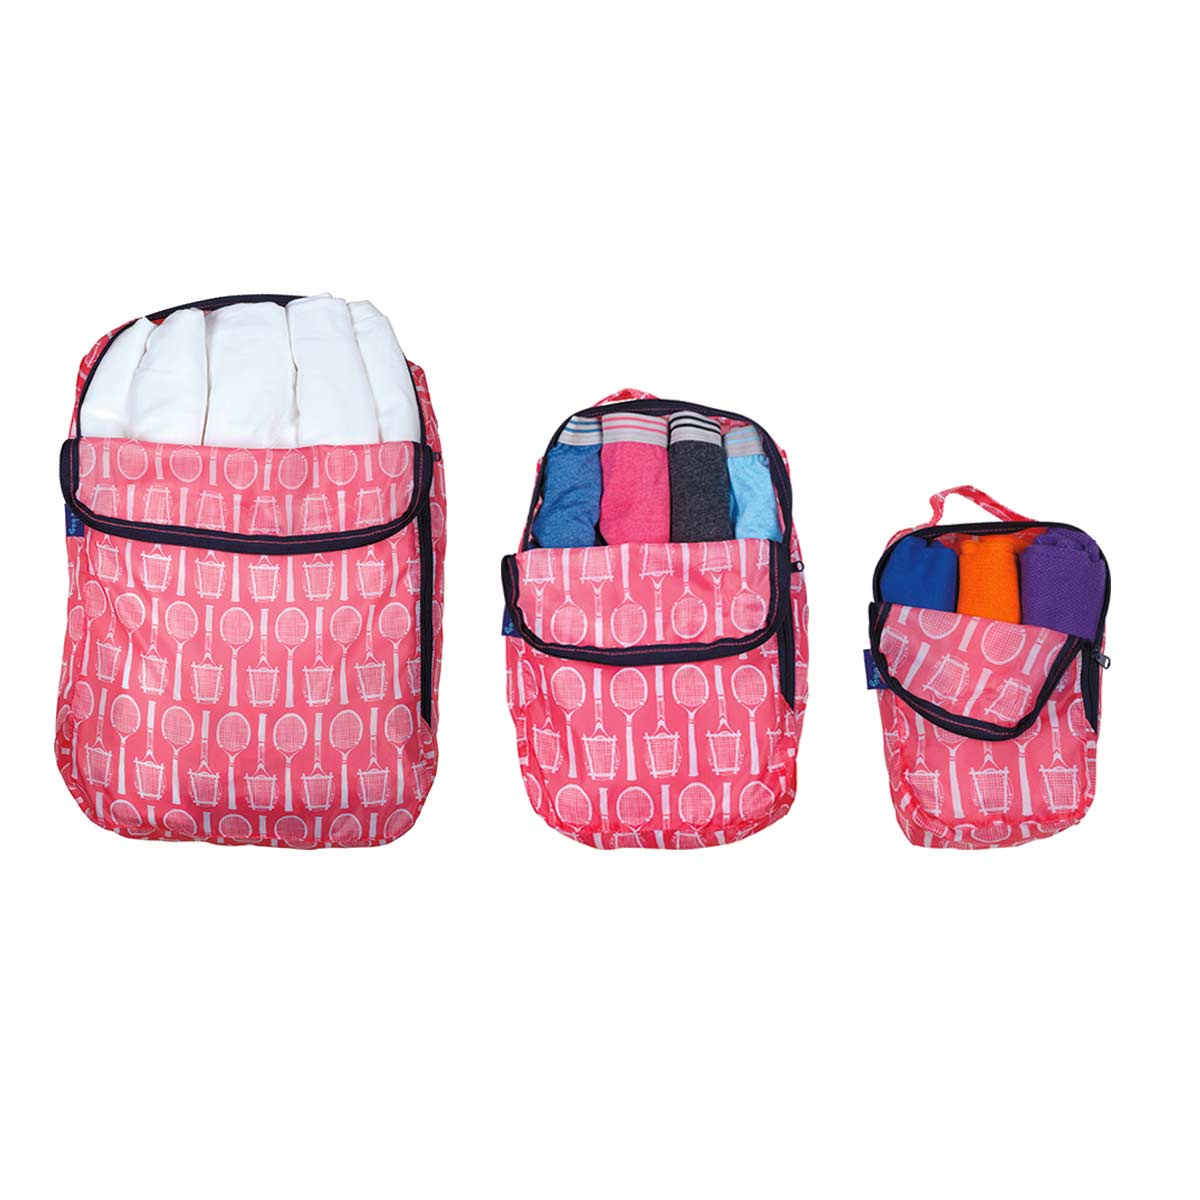 a set of 3 pink travel cubes with a tennis racket print